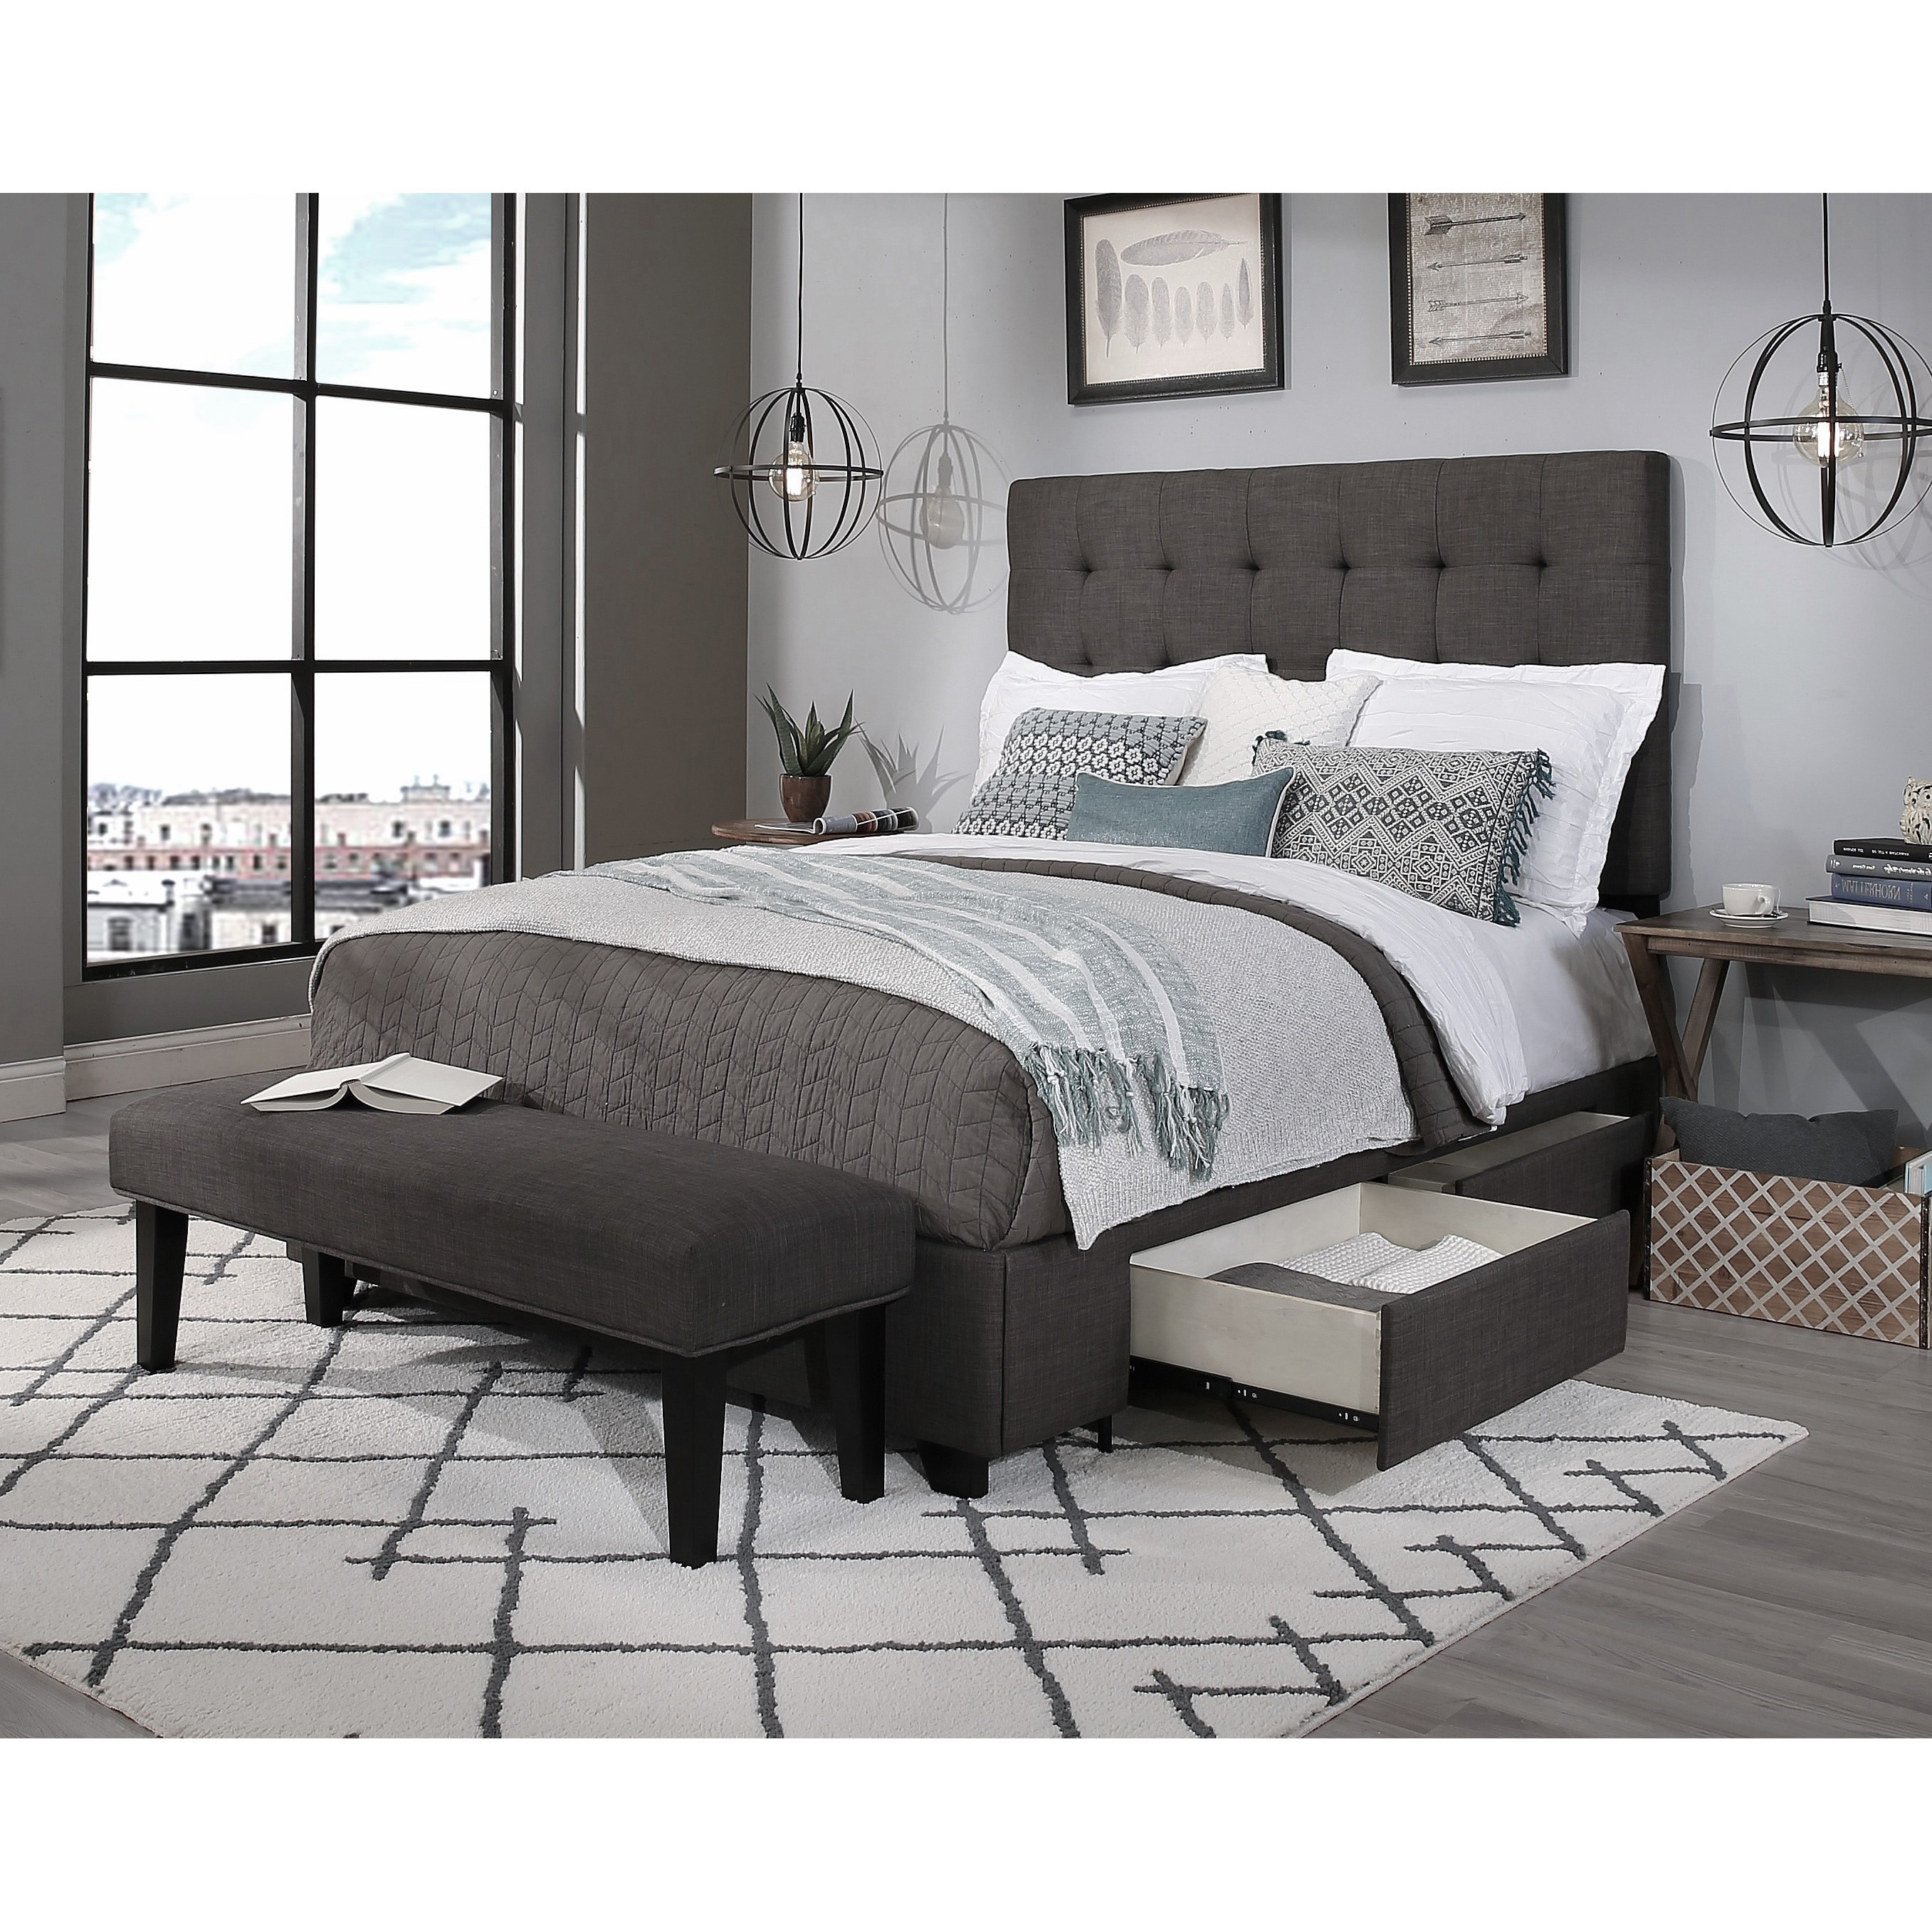 baxton sets bedroom stunning drawers comforter favela is frame beds and without gray platform headboard queen mattress size white studio grey of upholstered tufted cheap with king storage for wood high what headboards frames full black s modern